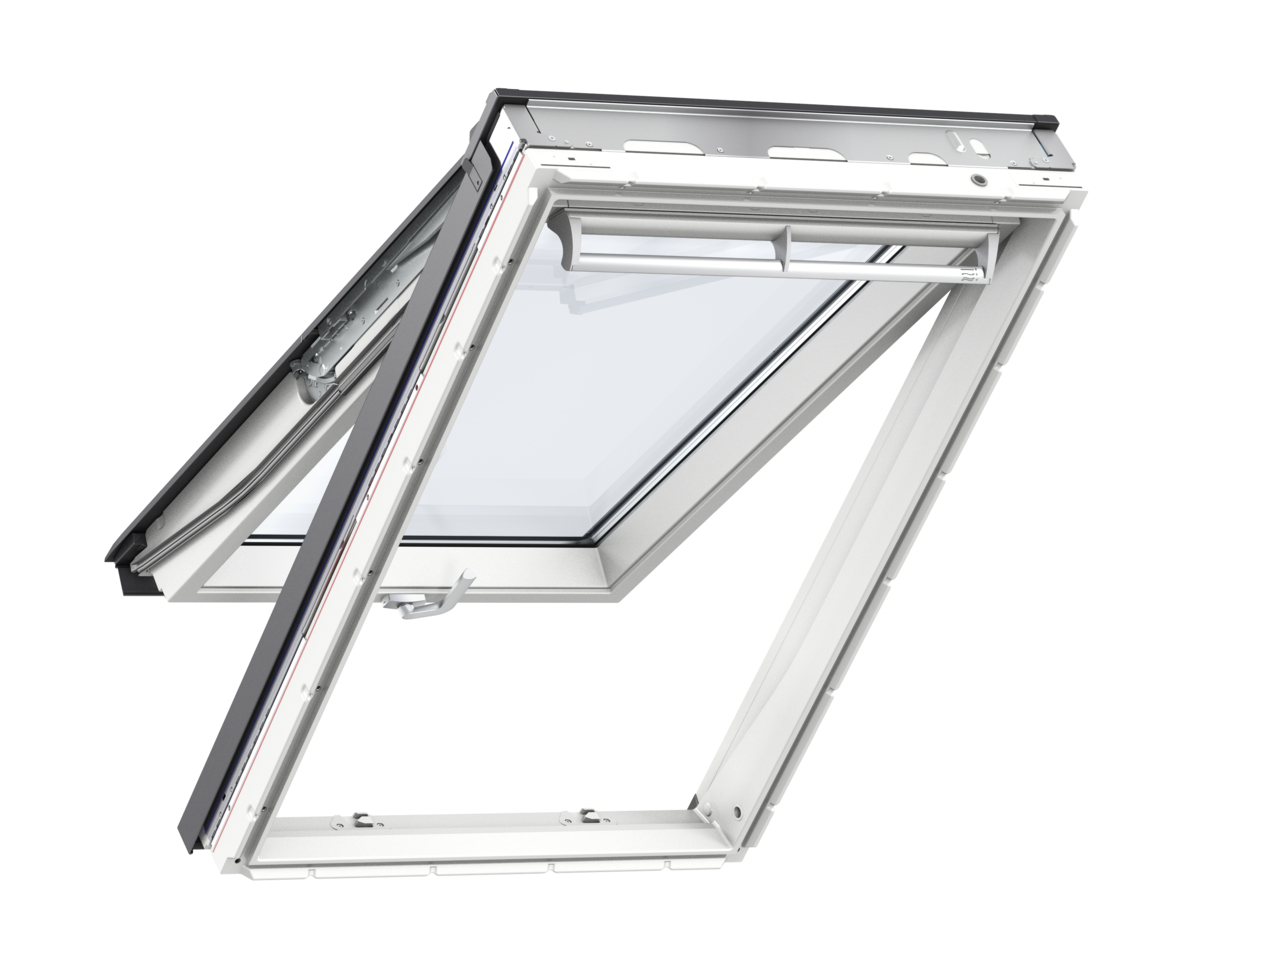 Velux GPU FK06 660 x 1180mm Top Hung 62Pane Roof Window - White Polyurethane